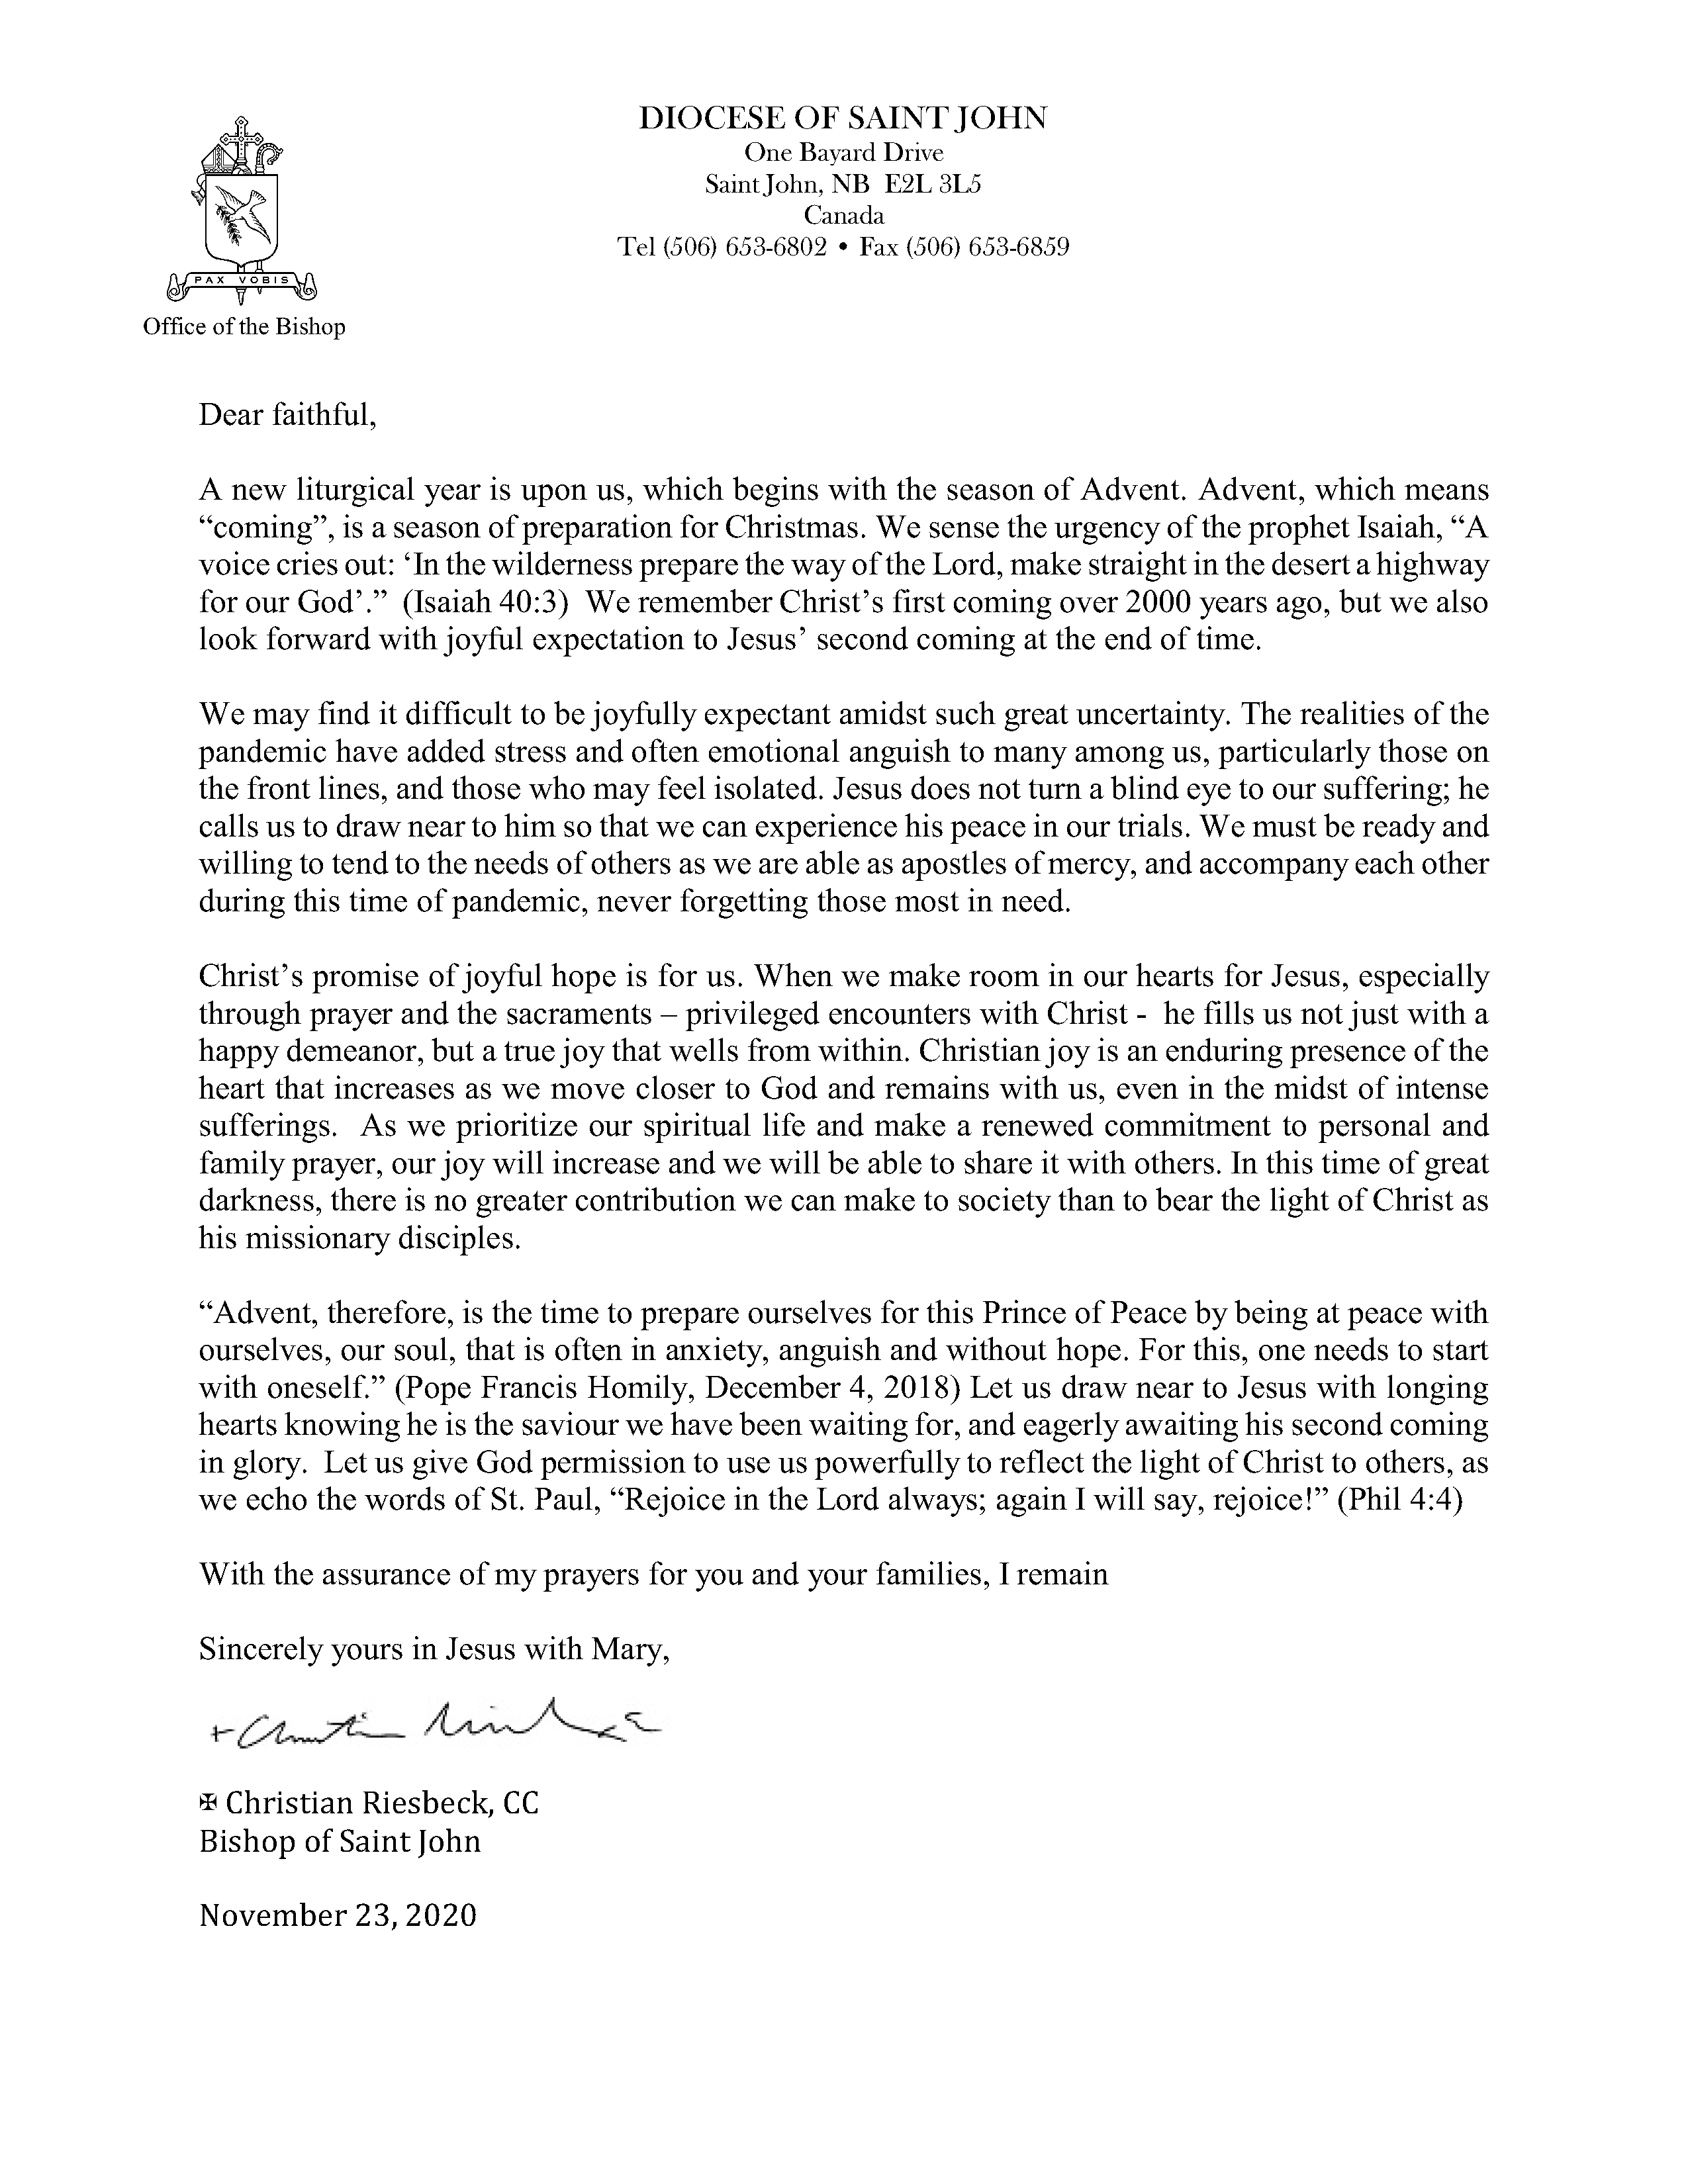 Advent Letter